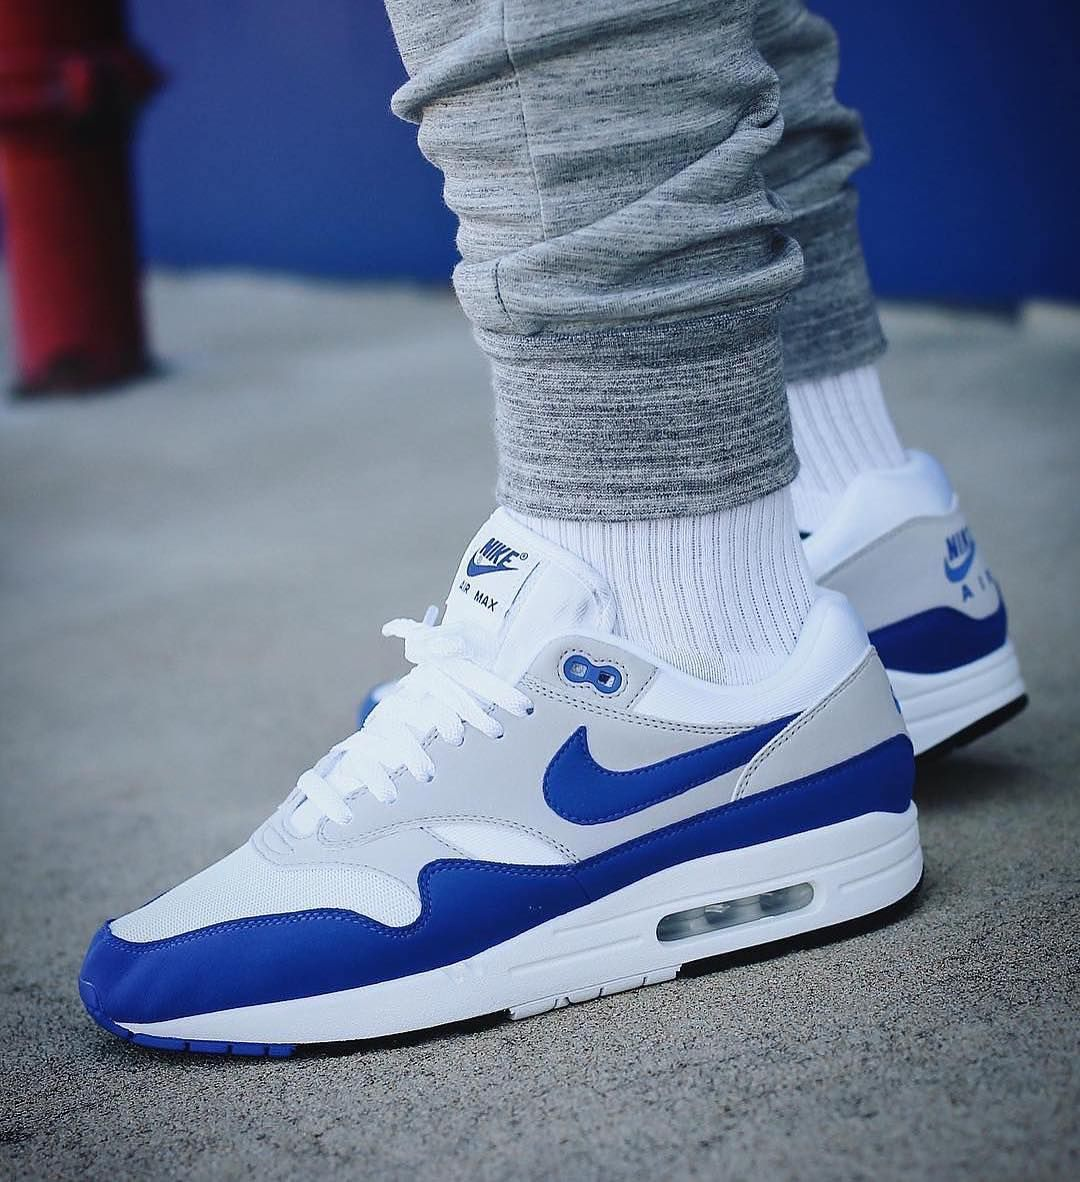 Nike Airmax 1 x OG Blue • These are such a nice colour way I